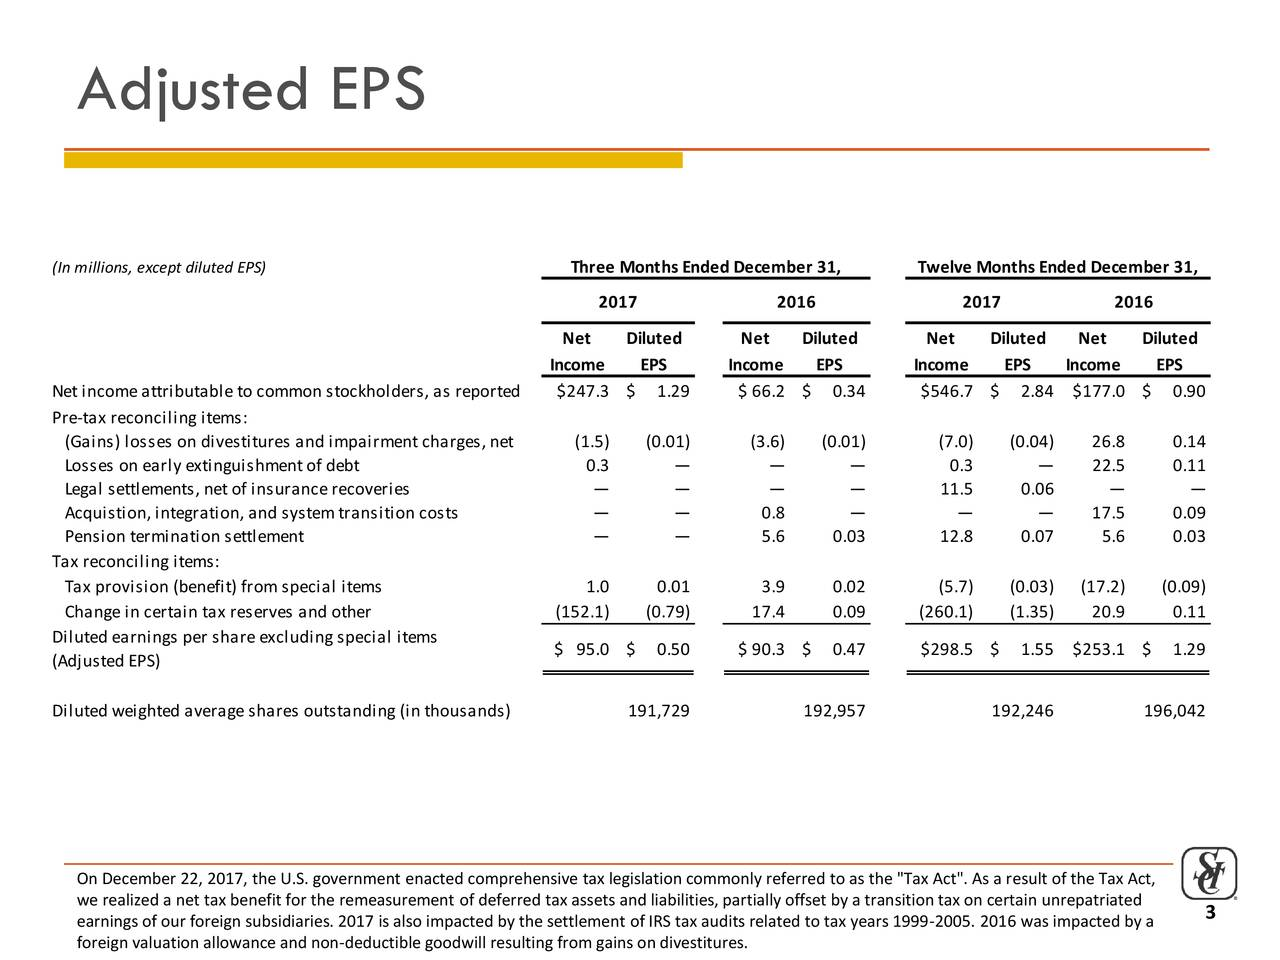 """3 (In millions, except diluted EPS) Three Months Ended December 31, Twelve Months Ended December 31, 2017 2016 2017 2016 Net Diluted Net Diluted Net Diluted Net Diluted Income EPS Income EPS Income EPS Income EPS Net incomeattributableto common stockholders, as report$247.3 $ 1.29 $ 66.2 $ 0.34 $546.7 $ 2.84 $177.0 $ 0.90 Pre-tax reconciling items: (Gains) losses on divestitures and impairment charges, n(1.5) (0.01) (3.6) (0.01) (7.0) (0.04) 26.8 0.14 Losses on early extinguishment of debt 0.3 — — — 0.3 — 22.5 0.11 Legal settlements, net of insurancerecoveries — — — — 11.5 0.06 — — Acquistion, integration, and system transition costs — — 0.8 — — — 17.5 0.09 Pension termination settlement — — 5.6 0.03 12.8 0.07 5.6 0.03 Tax reconciling items: Tax provision (benefit) from special items 1.0 0.01 3.9 0.02 (5.7) (0.03) (17.2) (0.09) Changein certain tax reserves and other (152.1) (0.79) 17.4 0.09 (260.1) (1.35) 20.9 0.11 Diluted earnings per shareexcluding special items $ 95.0 $ 0.50 $ 90.3 $ 0.47 $298.5 $ 1.55 $253.1 $ 1.29 (Adjusted EPS) Diluted weighted averageshares outstanding (in thousands) 191,729 192,957 192,246 196,042 On December 22, 2017, the U.S. government enacted comprehensive tax legislation commonly referred to as the """"Tax Act"""". As a result of the Tax Act, we realized a net tax benefit for the remeasurement of deferred tax assets and liabilities, partially offset by a transition tax on certain unrepatriated earnings of our foreign subsidiaries. 2017 is also impacted by the settlement of IRS tax audits related to tax years 1999-2005. 2016 was impacted by a foreign valuation allowance and non-deductible goodwill resulting from gains on divestitures."""